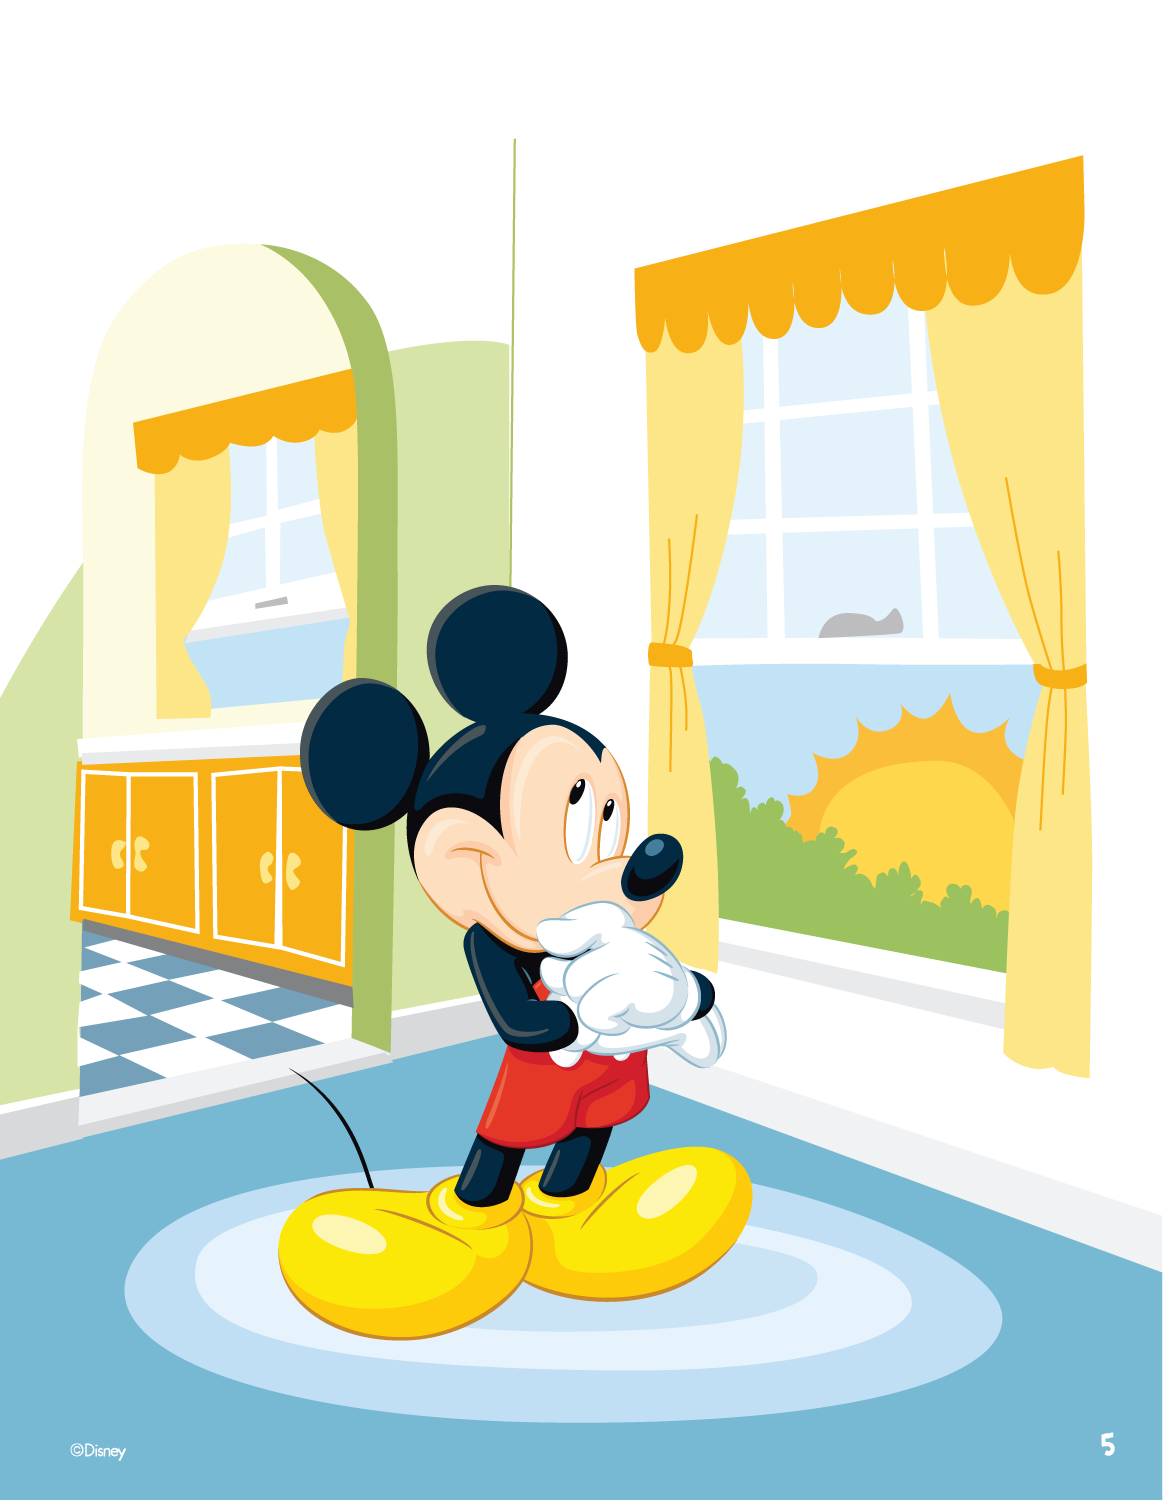 Letterland annie apple clipart image freeuse download Mickey Mouse Mickey's Safari in Letterland Minnie Mouse Donald Duck ... image freeuse download